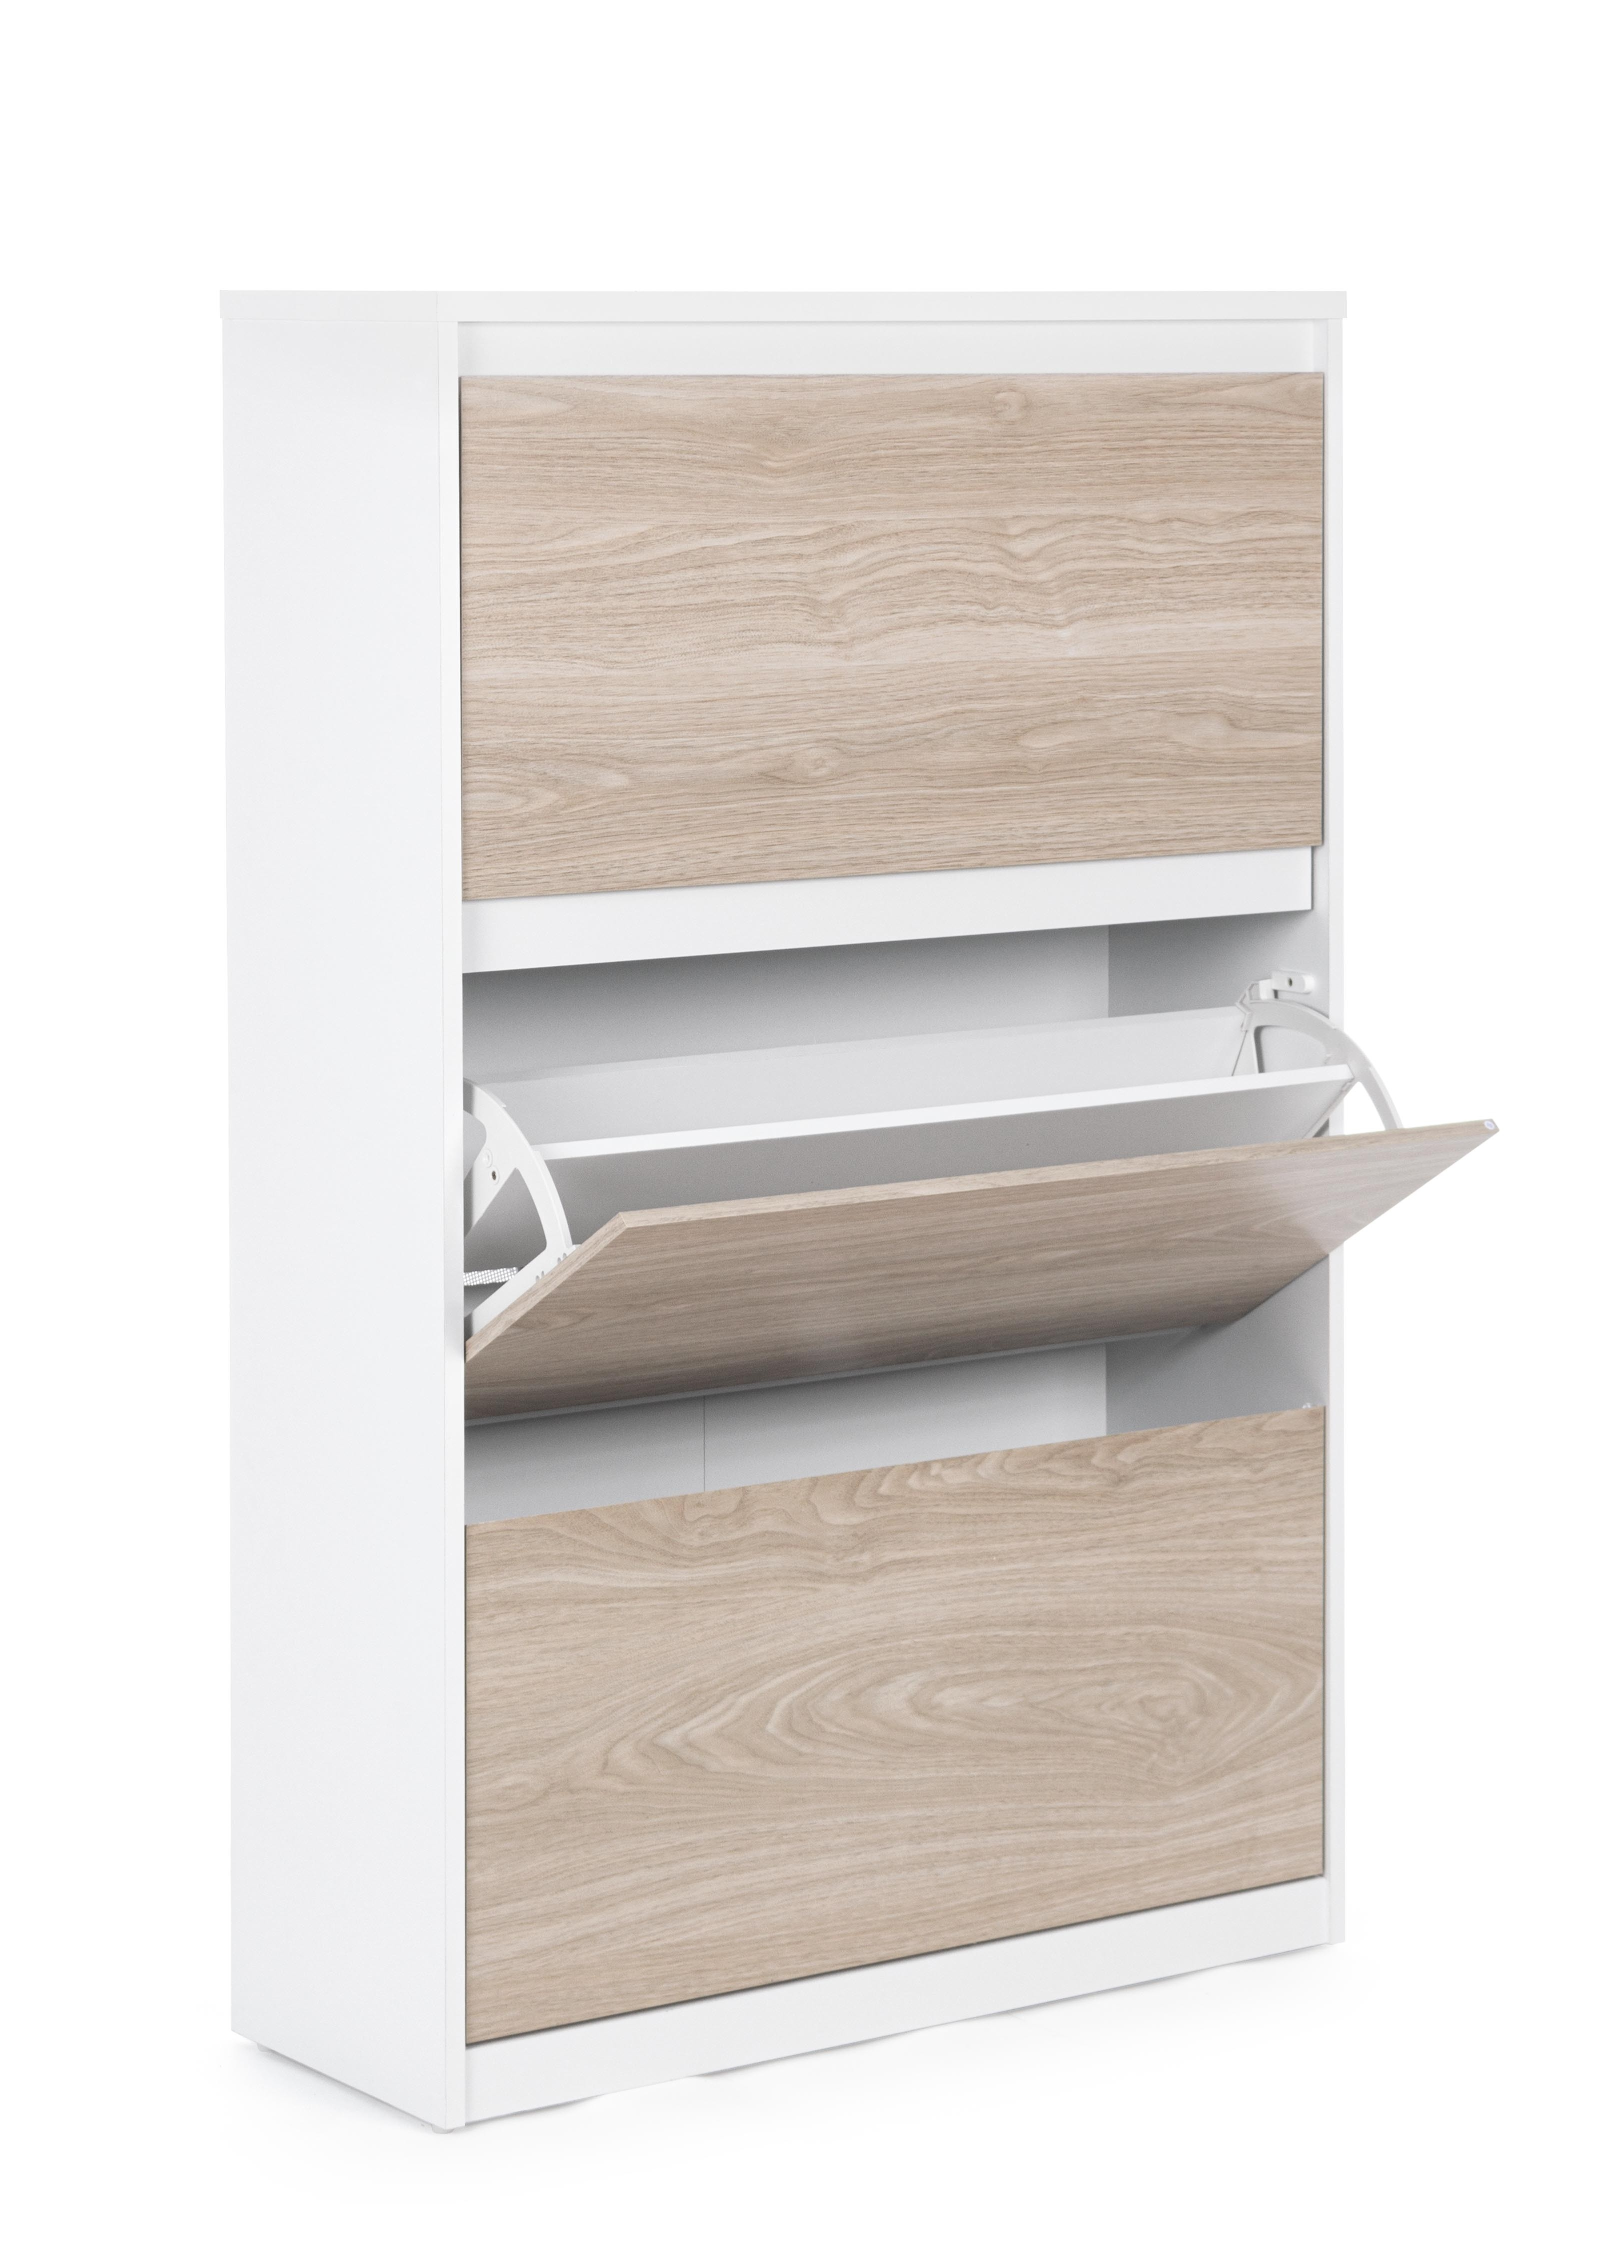 Pantofar din pal si MDF, cu 3 usi si 6 compartimente, Land Natural / Alb, l79xA29xH123,6 cm imagine